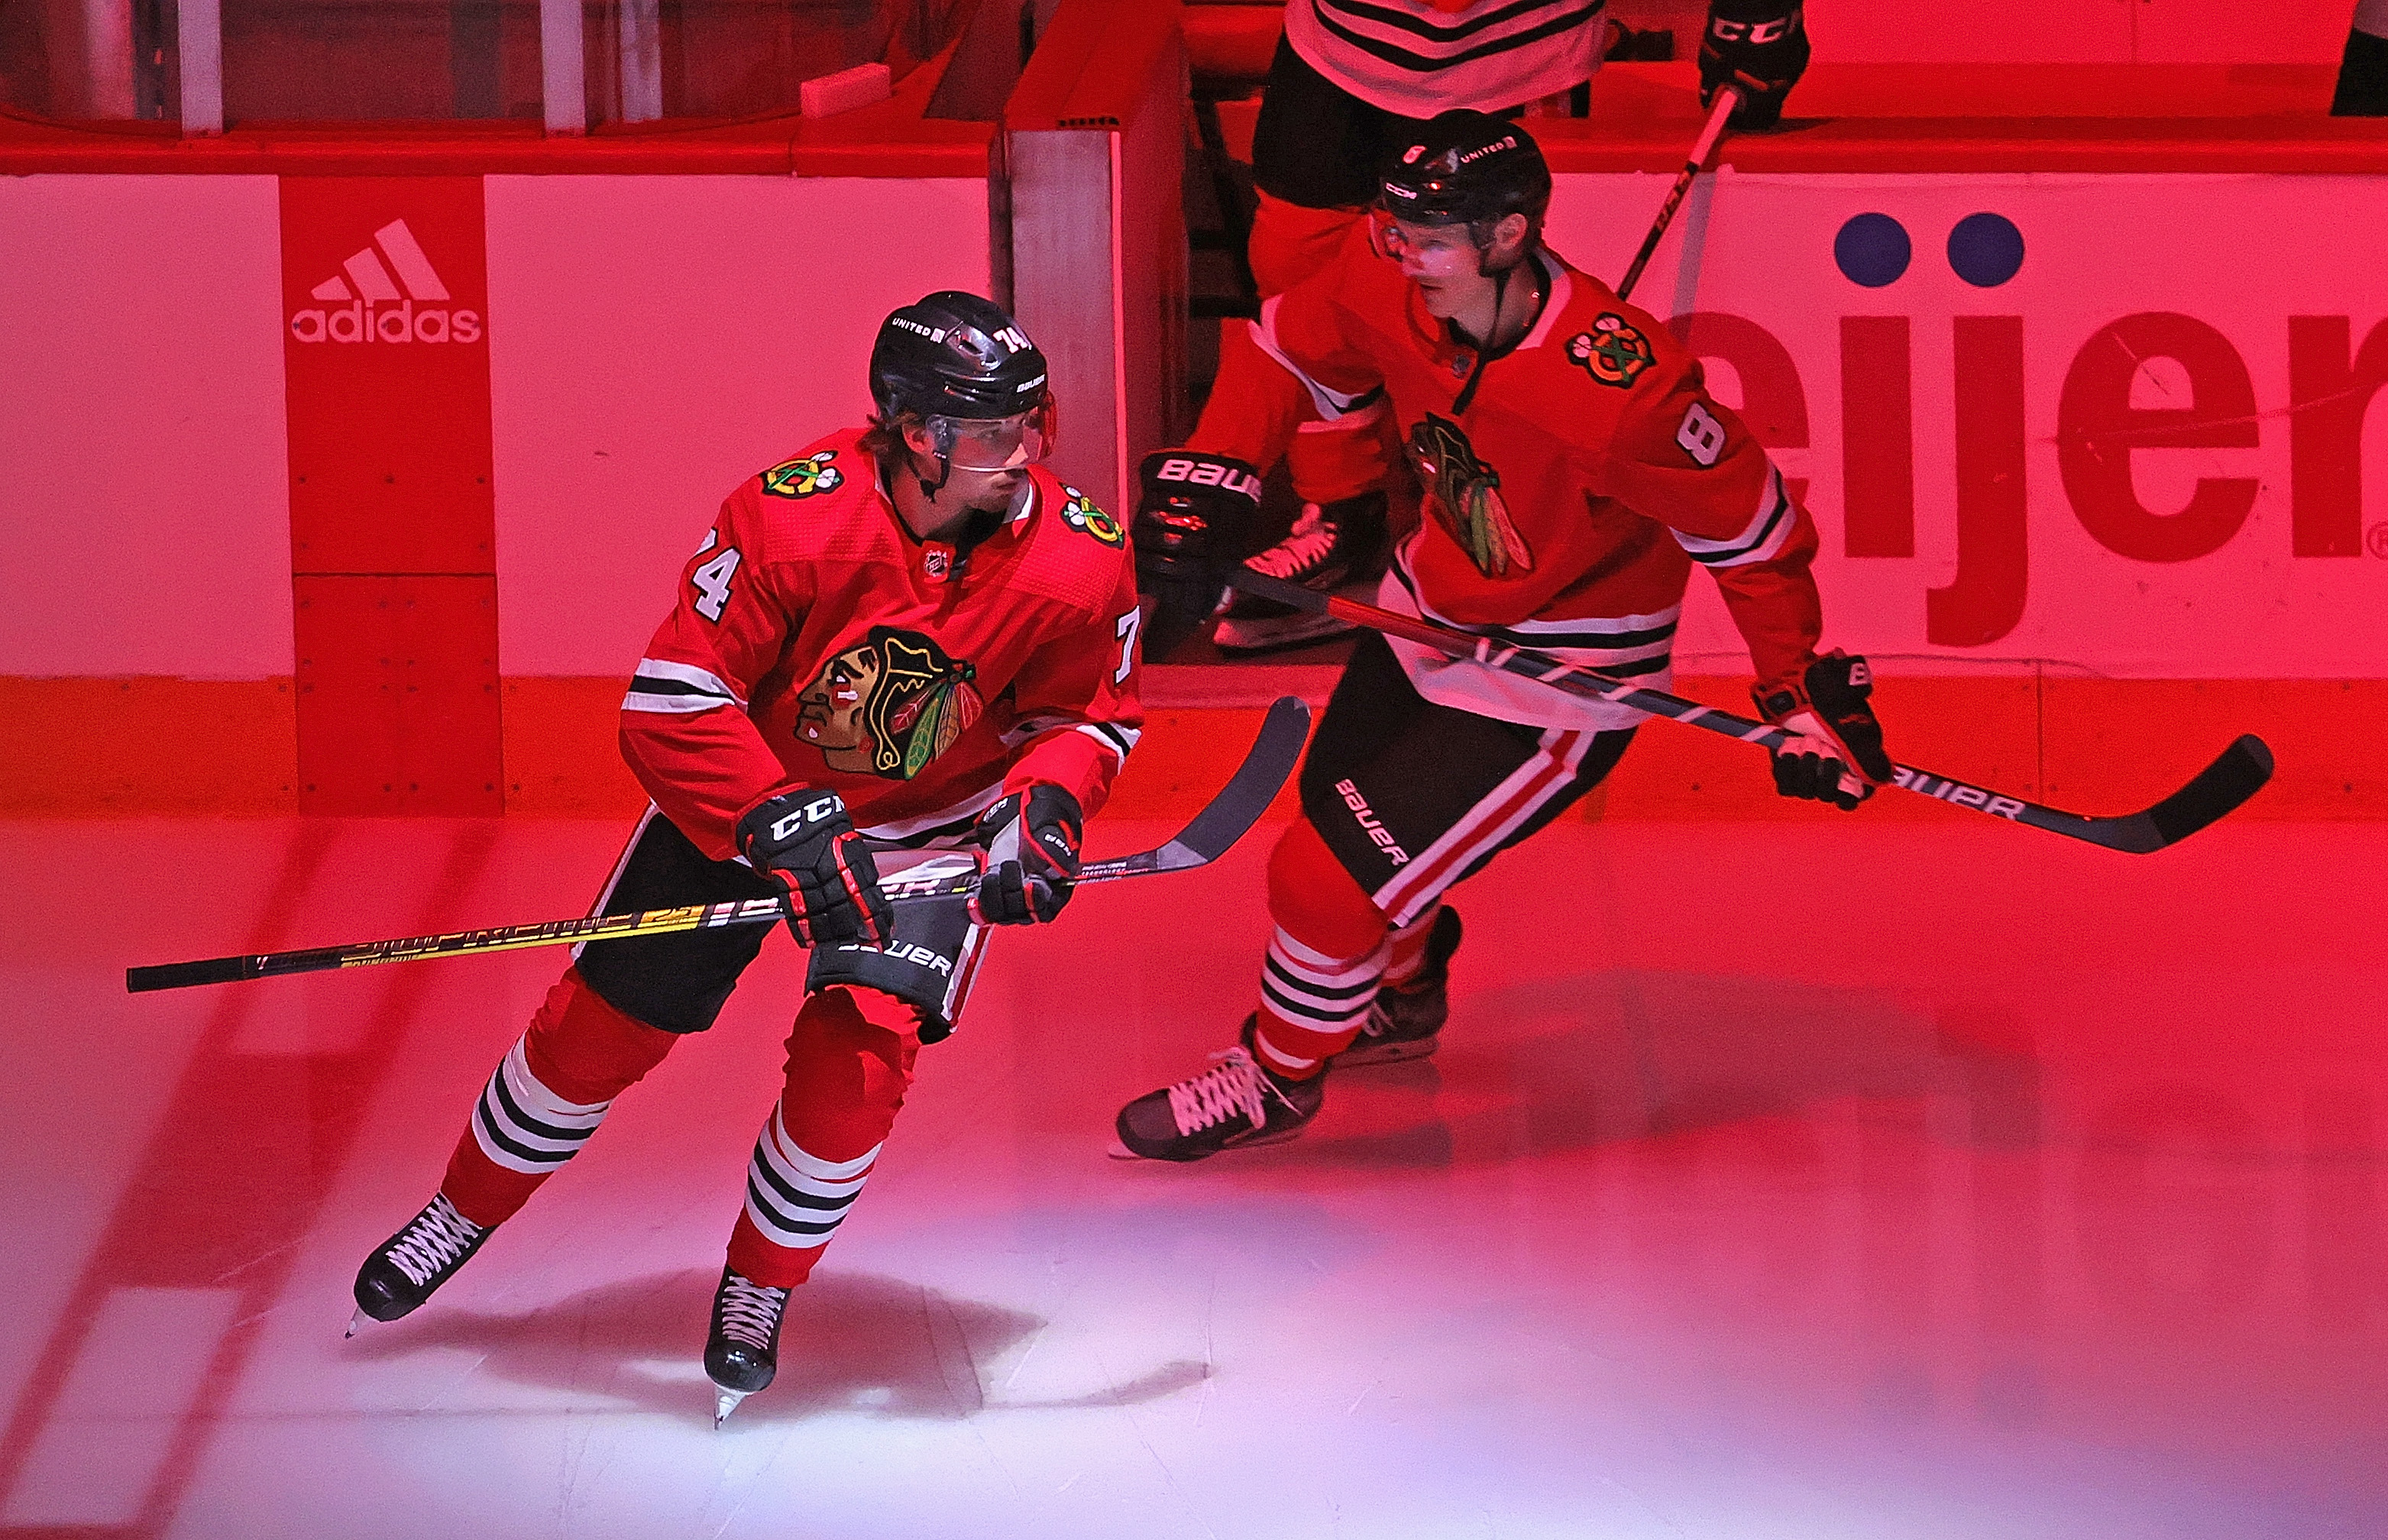 Nicolas Beaudin #74 and Dominik Kubalik #8 of the Chicago Blackhawks skate onto the ice before a game against the Dallas Stars at the United Center on May 10, 2021 in Chicago, Illinois.